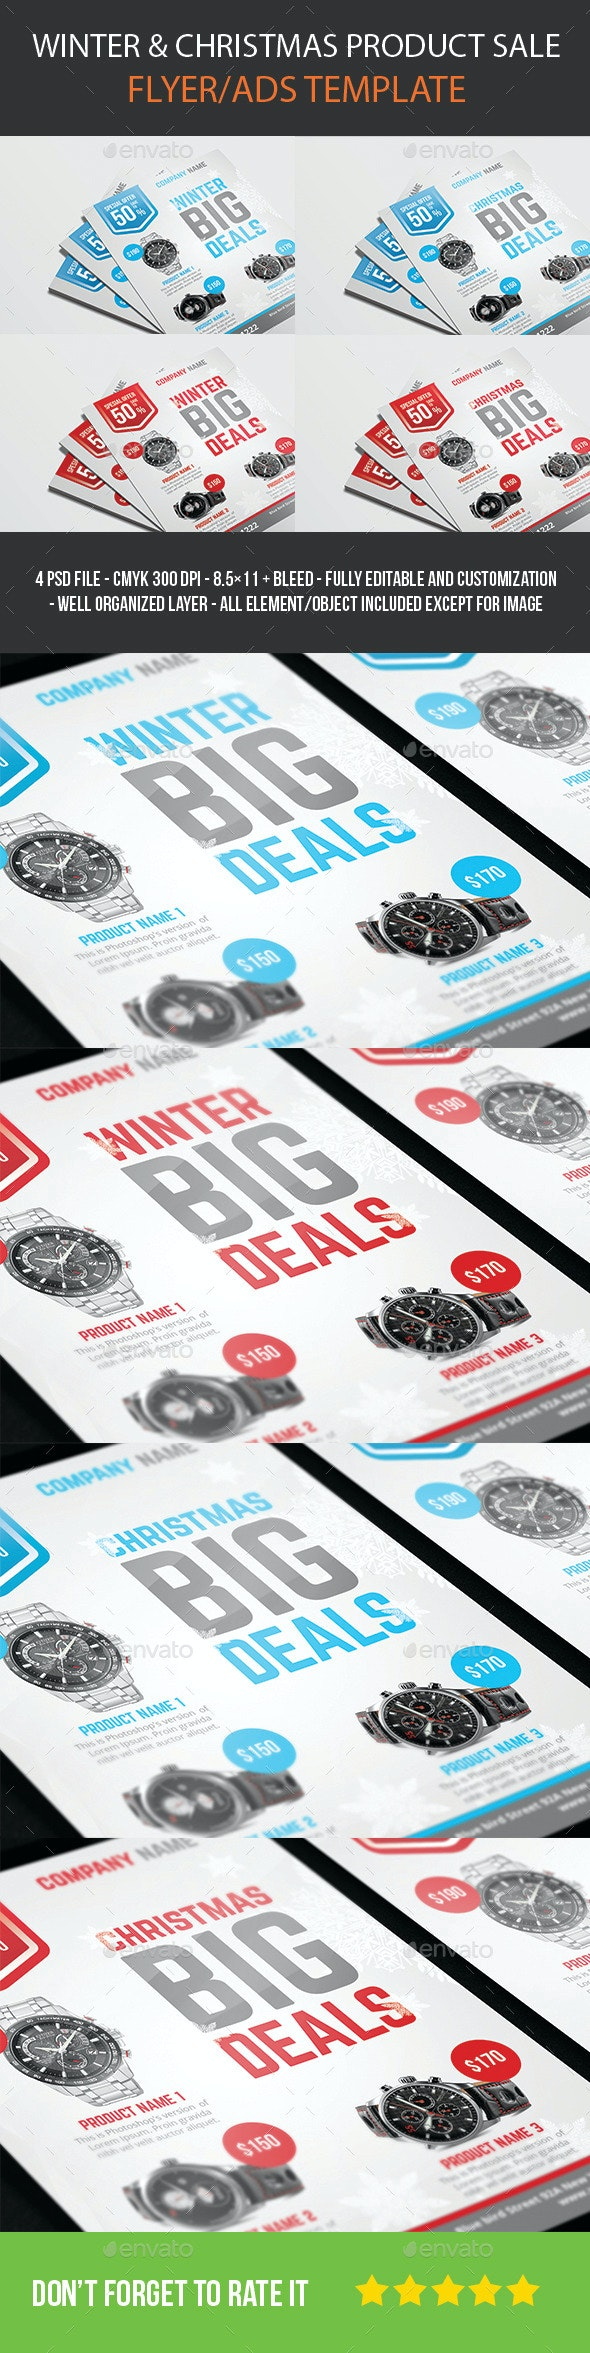 winter/christmas product sale flyer - Commerce Flyers